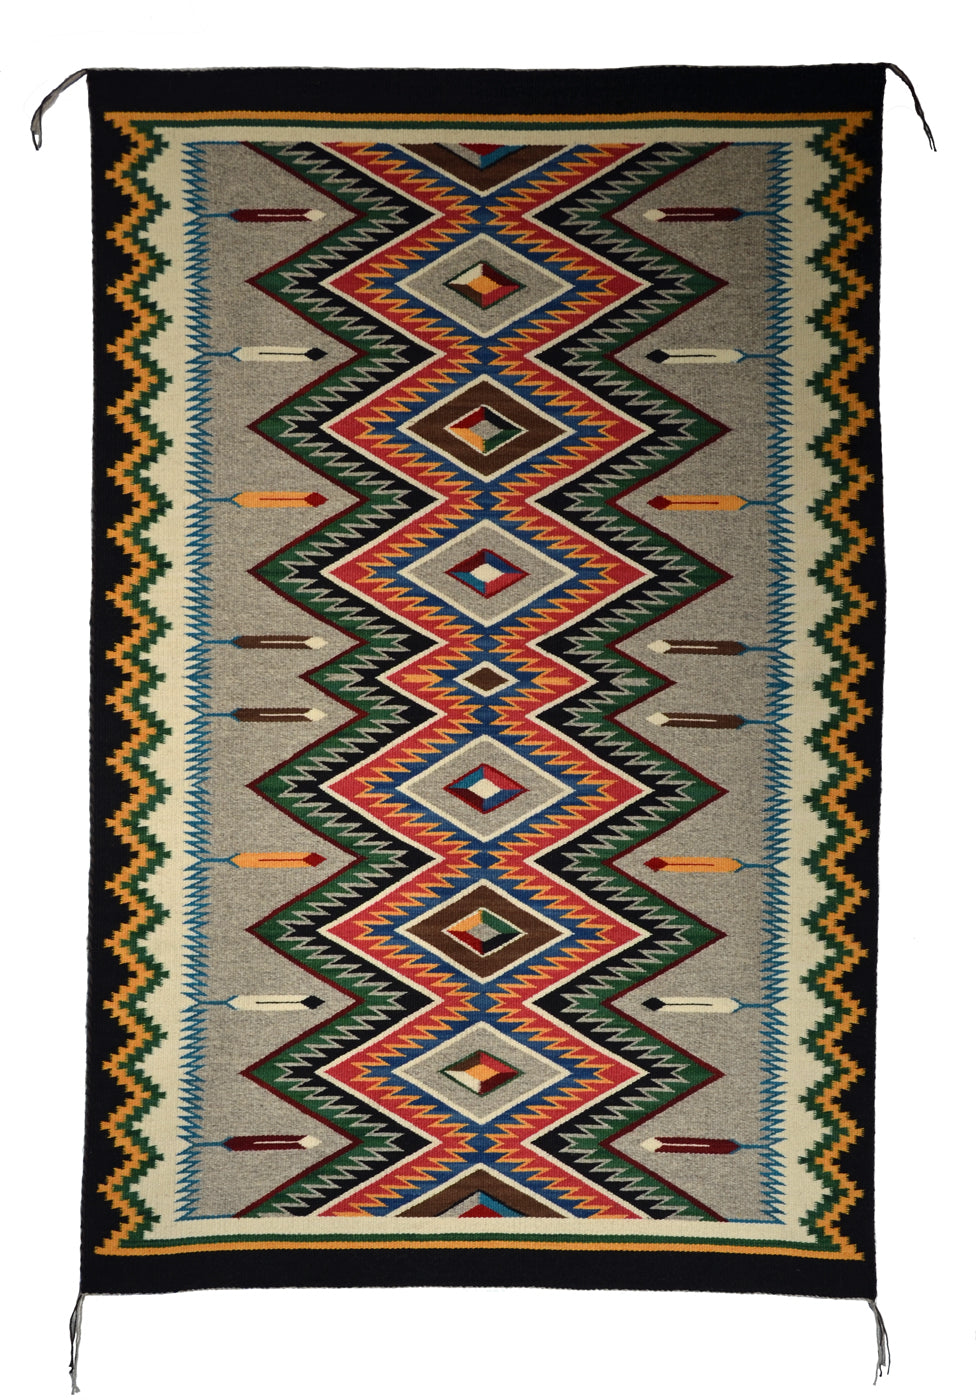 "Red Mesa Navajo Rug Weaving : Cara Yazzie : Churro 1614 : 60"" x 38"" - Getzwiller's Nizhoni Ranch Gallery"